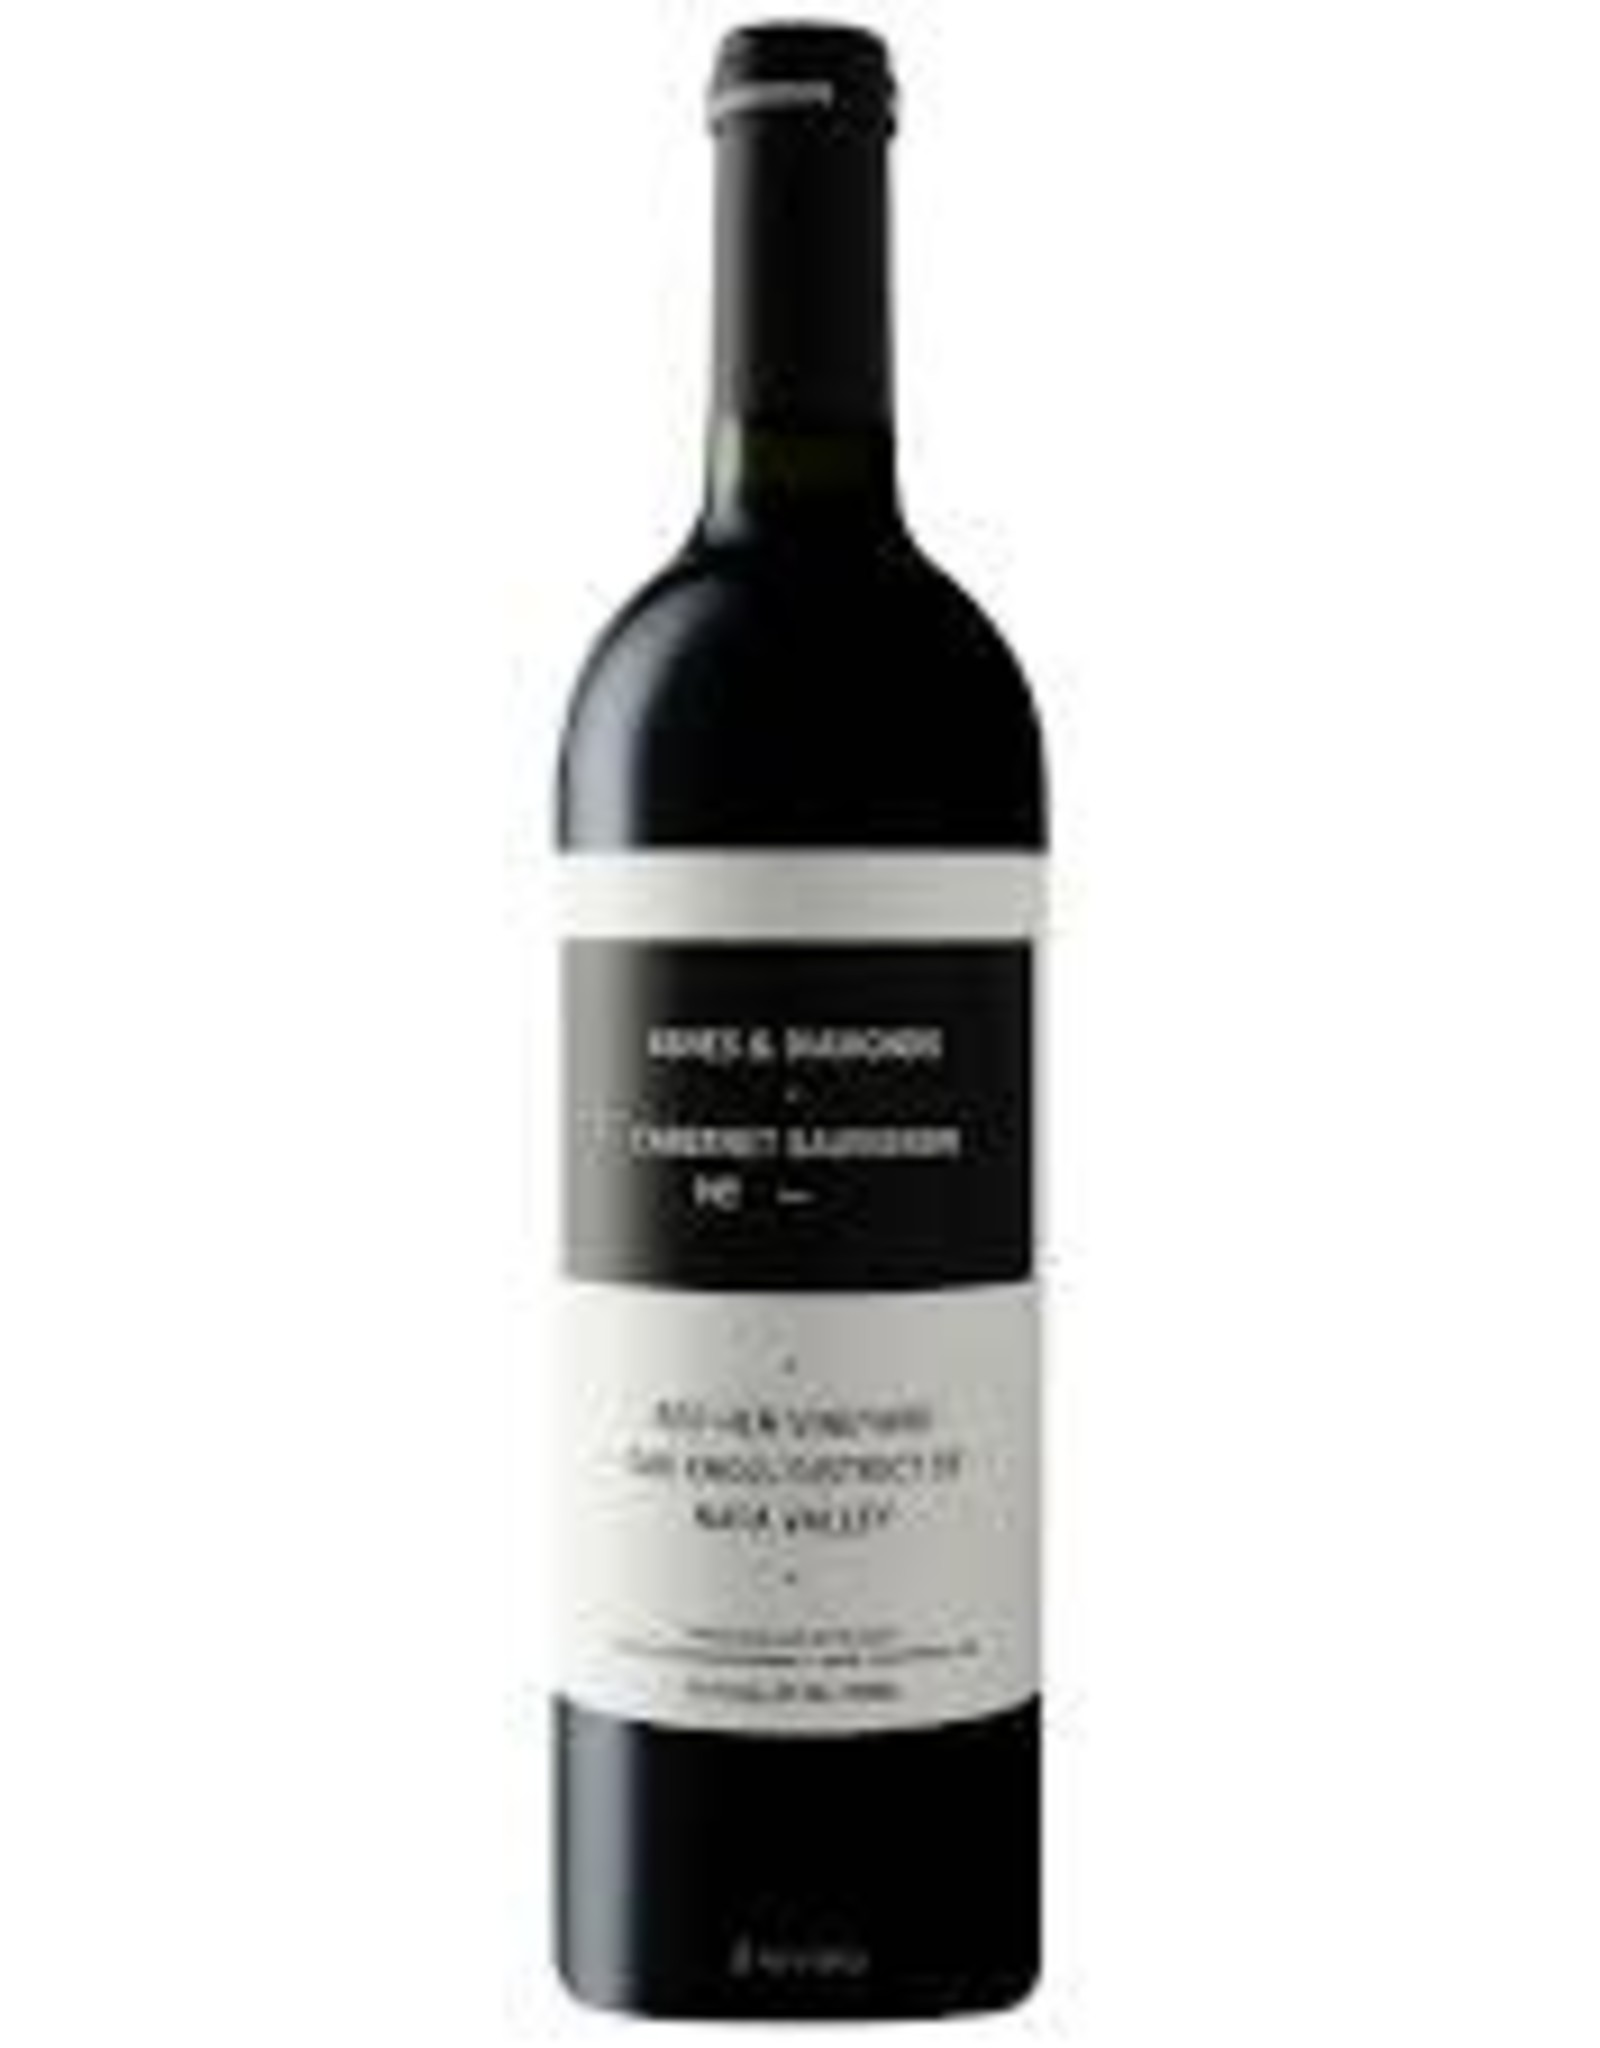 Red Blend, Oak Knoll, A & D Vineyard, Grand Vin No 1, Ashes and Diamonds 2016